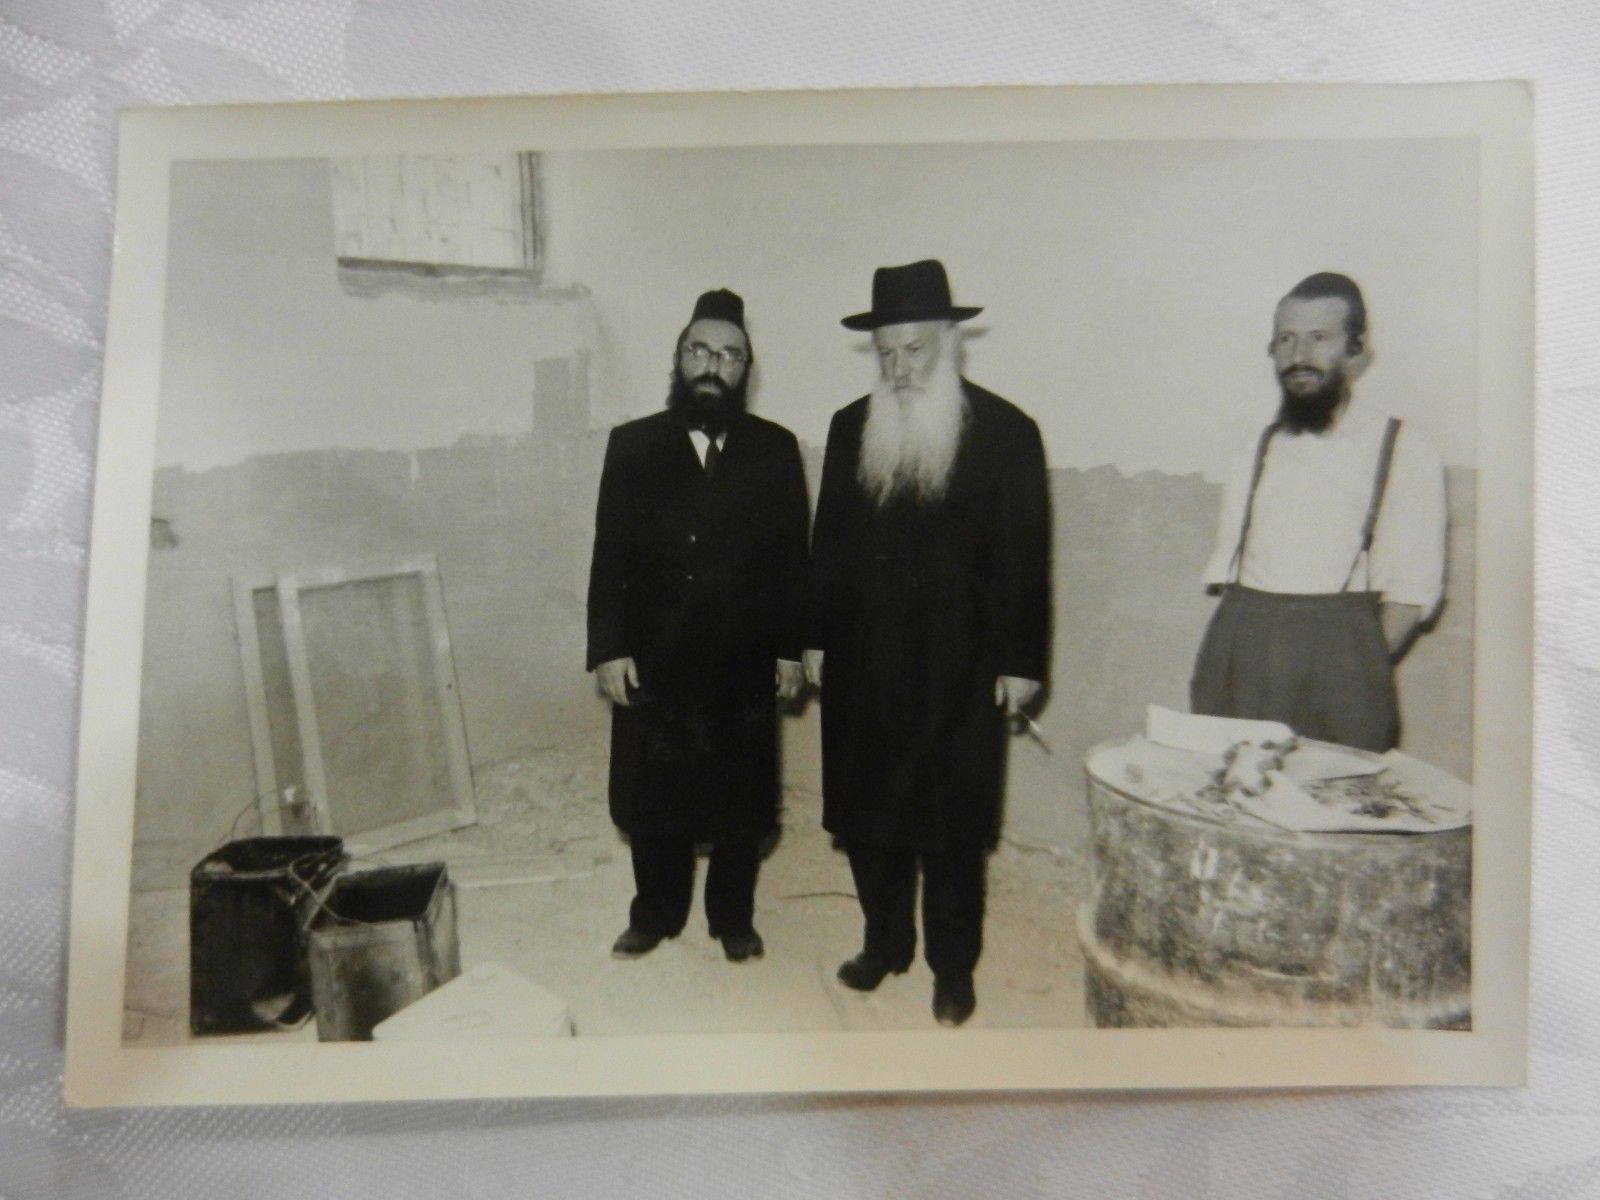 jewish-judaica-photo-rabbi-chassidic-antique-yeshiva-synagogue.jpg